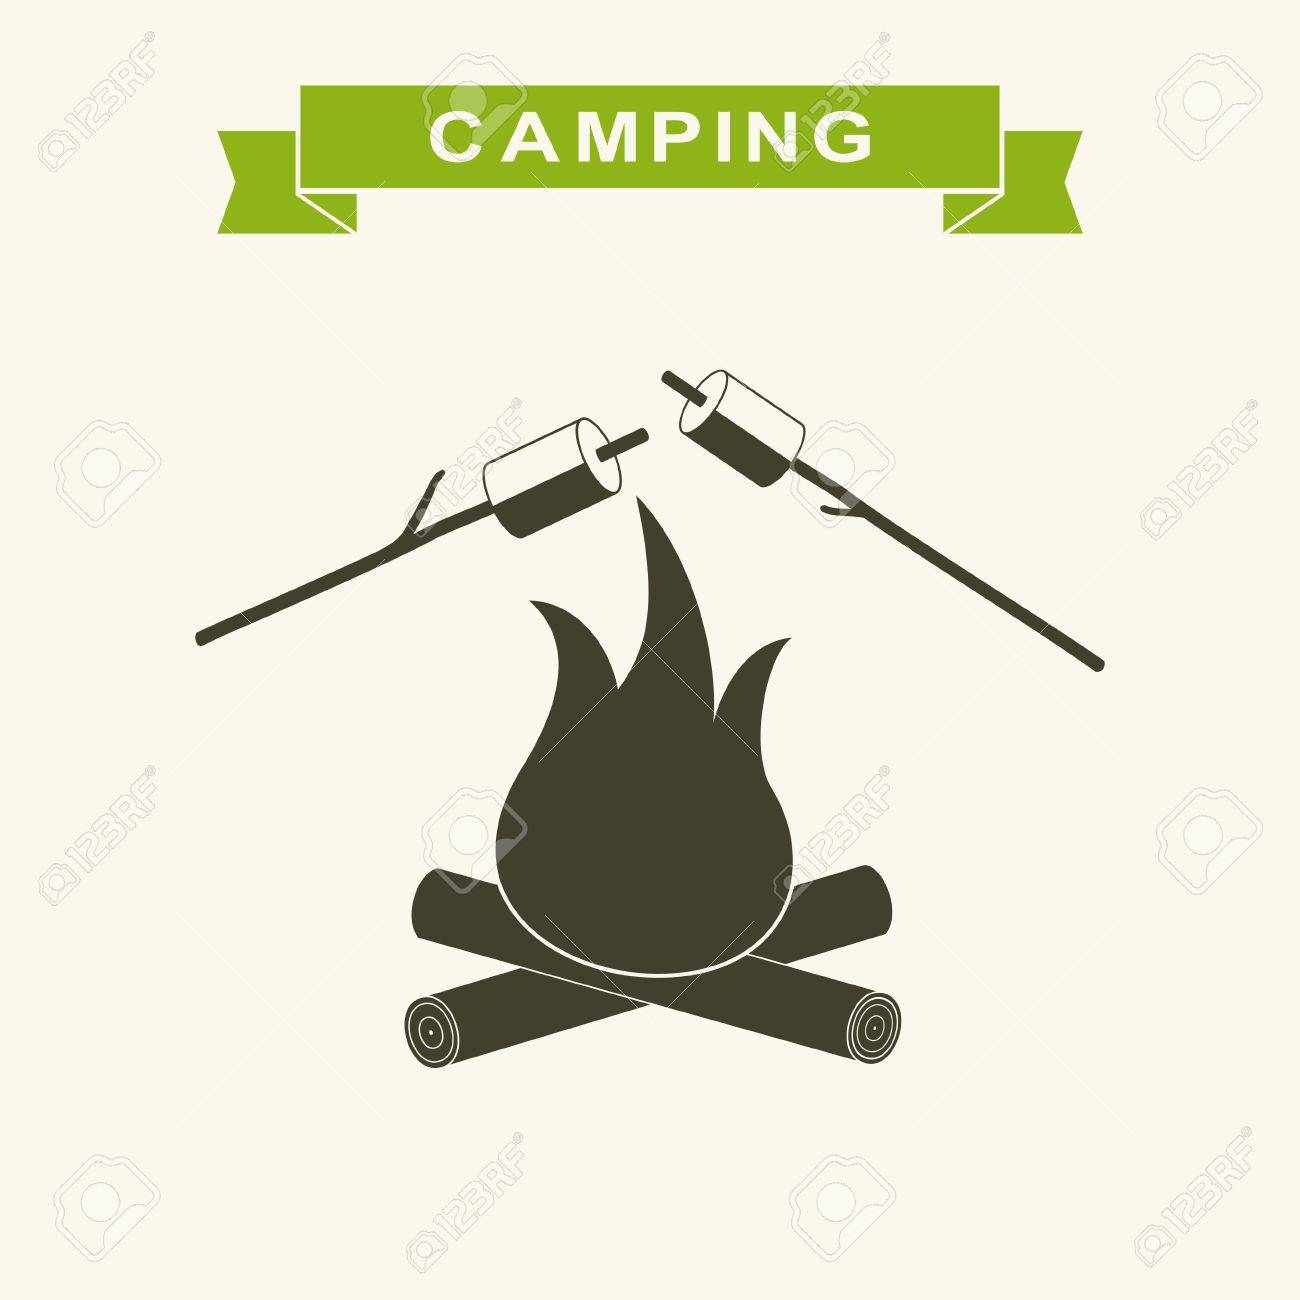 Bonfire With Marshmallow Icon Camping Grill Flat Outdoor Campfire Night Vector